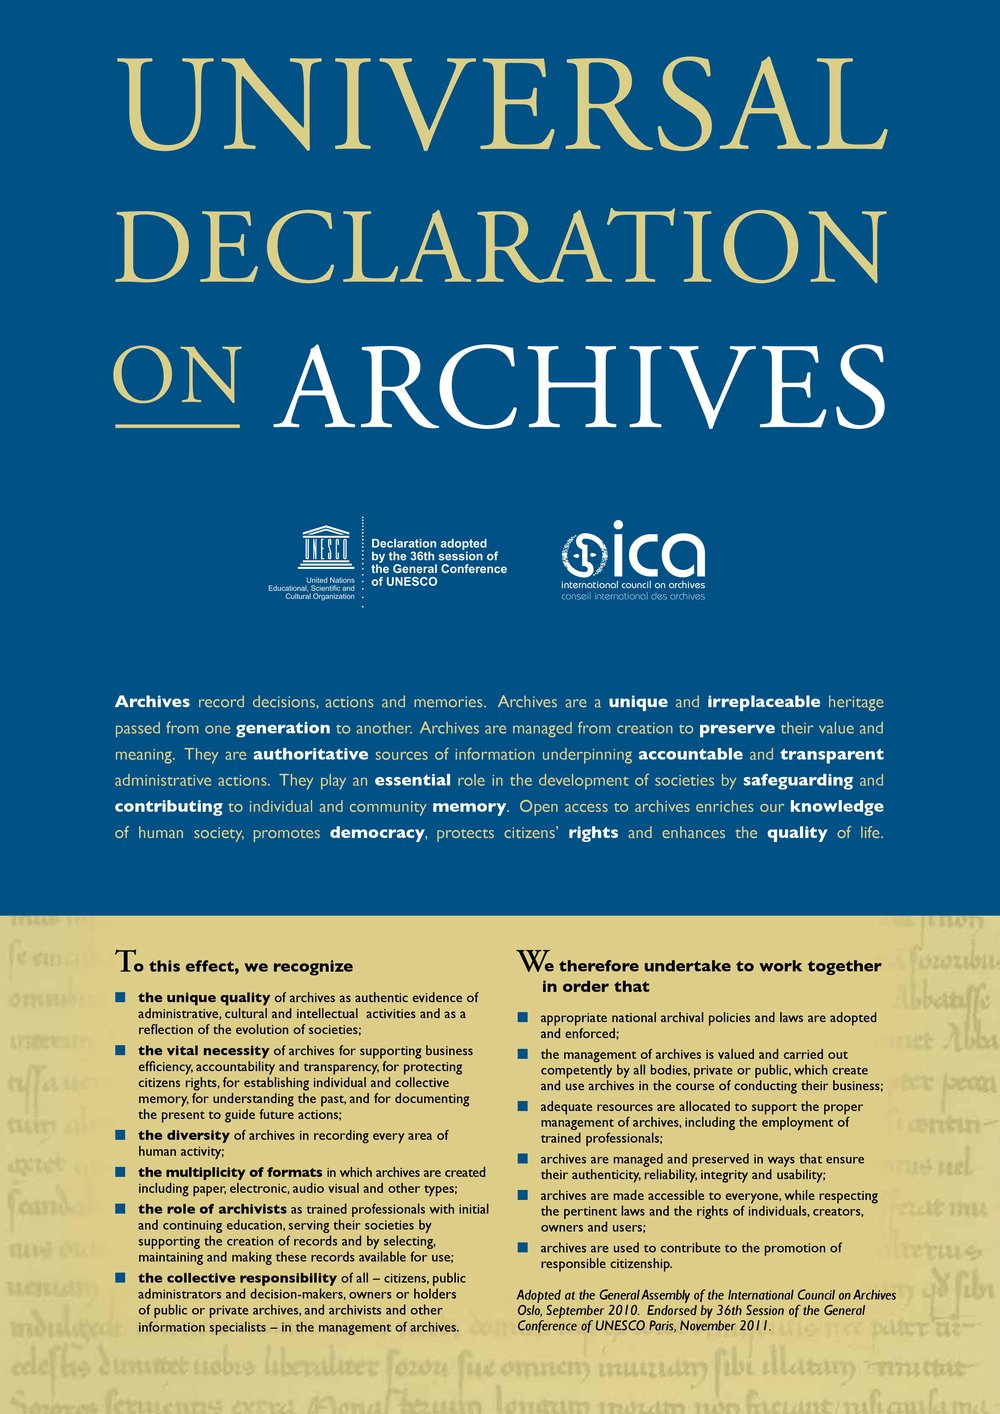 Universal Declaration on Archives by UNESCO & ICA